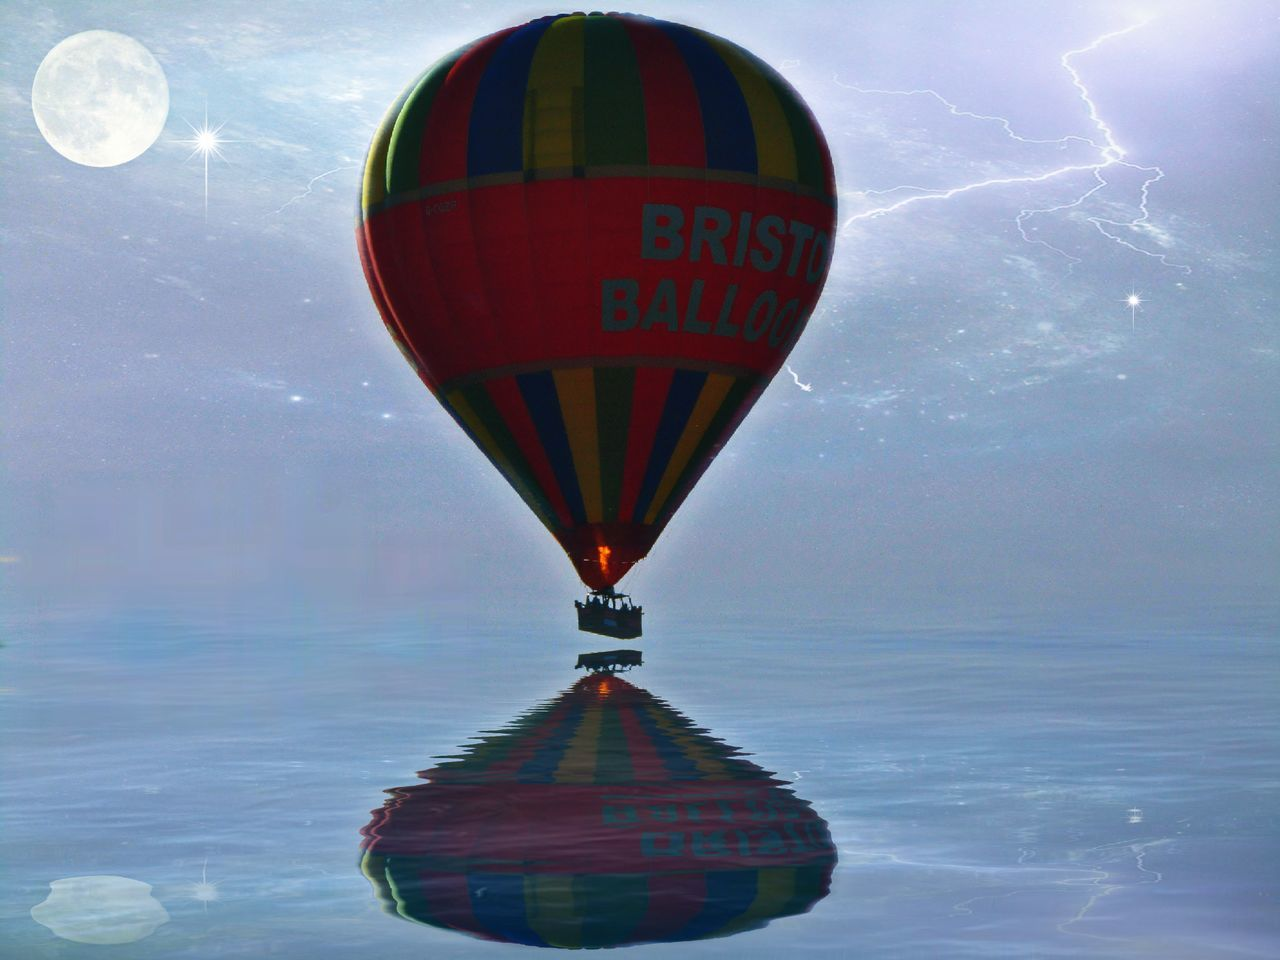 Multi Colored Sky Hot Air Balloon Outdoors Night Air Vehicle Transportation Low Angle View Water Edit Edit Junkie